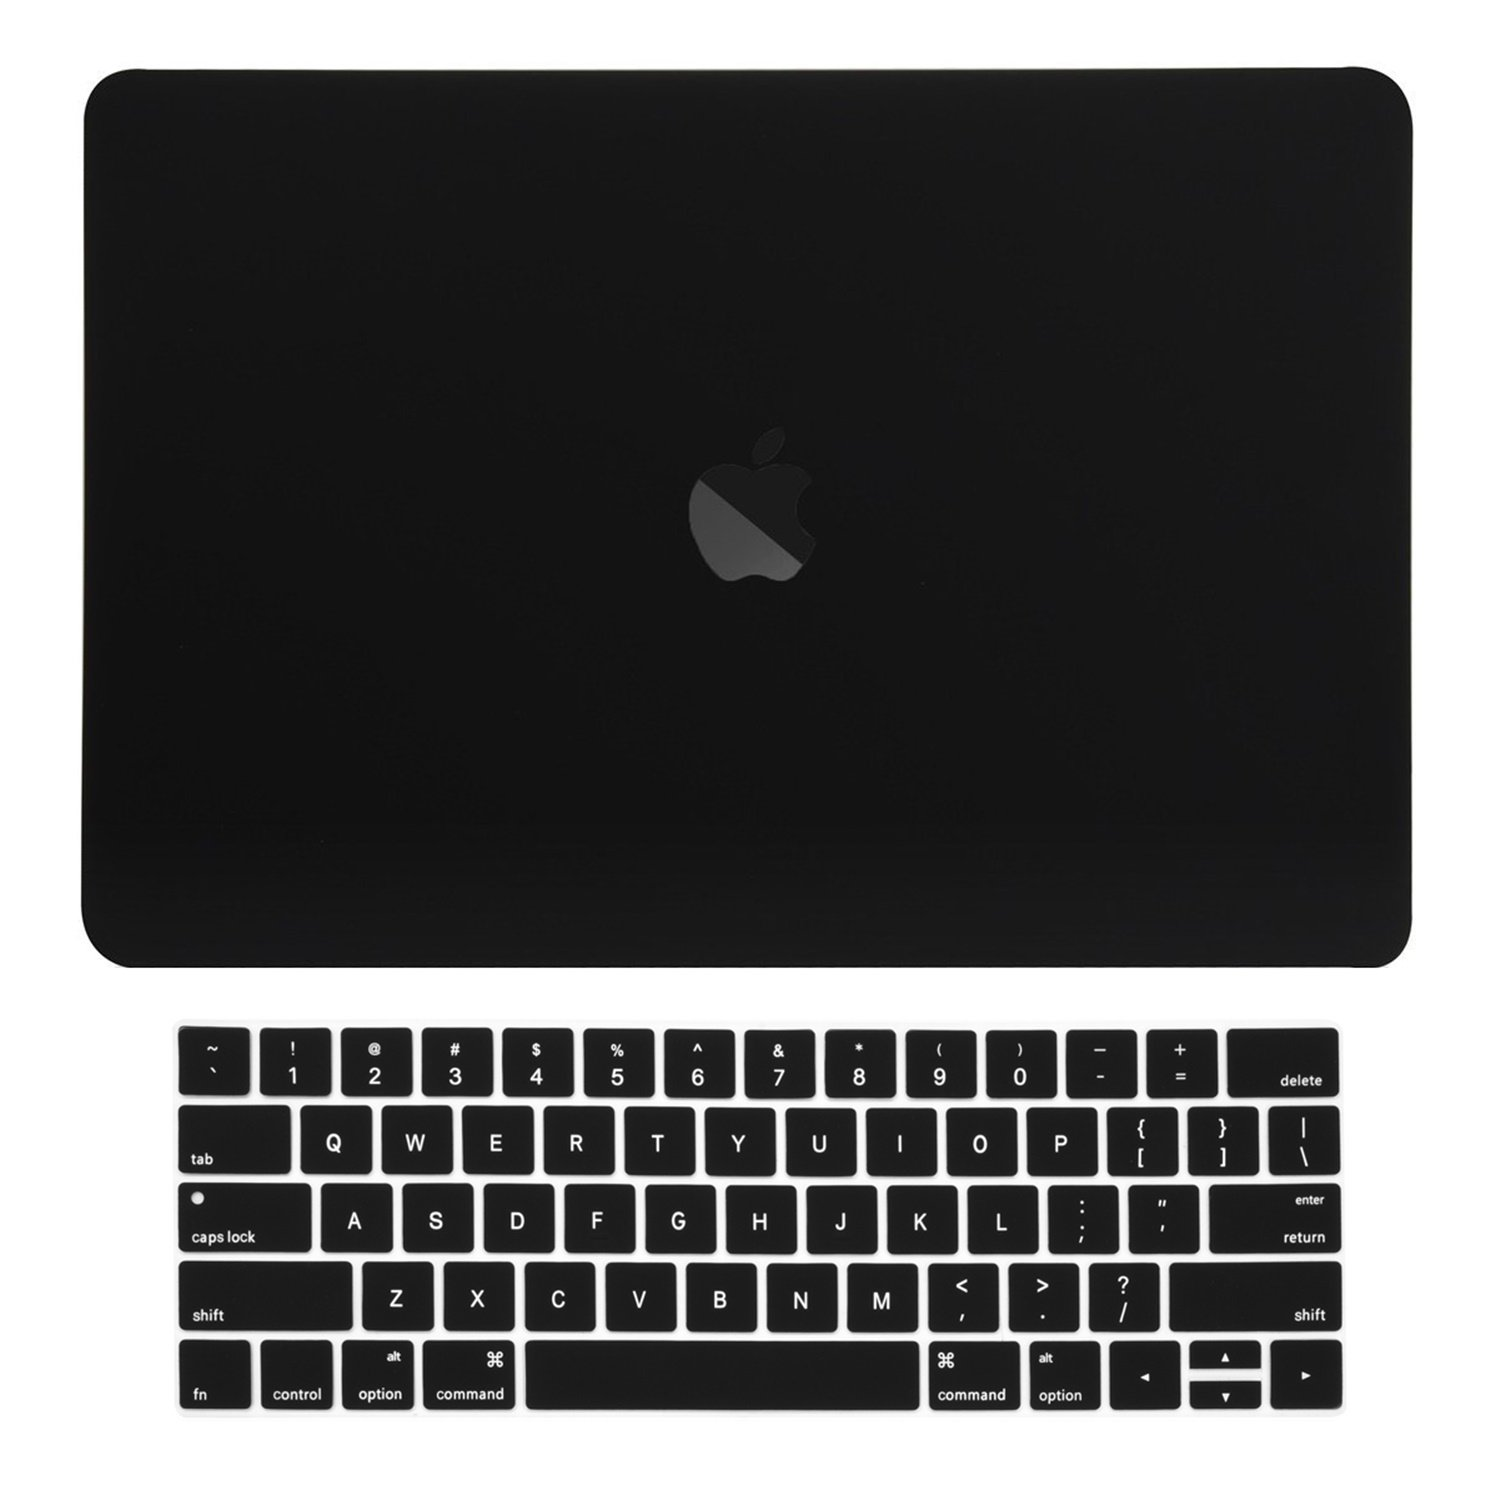 TOP CASE - Rubberized Matte Hard Case Cover + Matching Color Keyboard Cover Compatible WIth MacBook Pro 15''(15''Diagonally) with Touch Bar Model A1707,1990(Release 2016,2017,2018) - Black